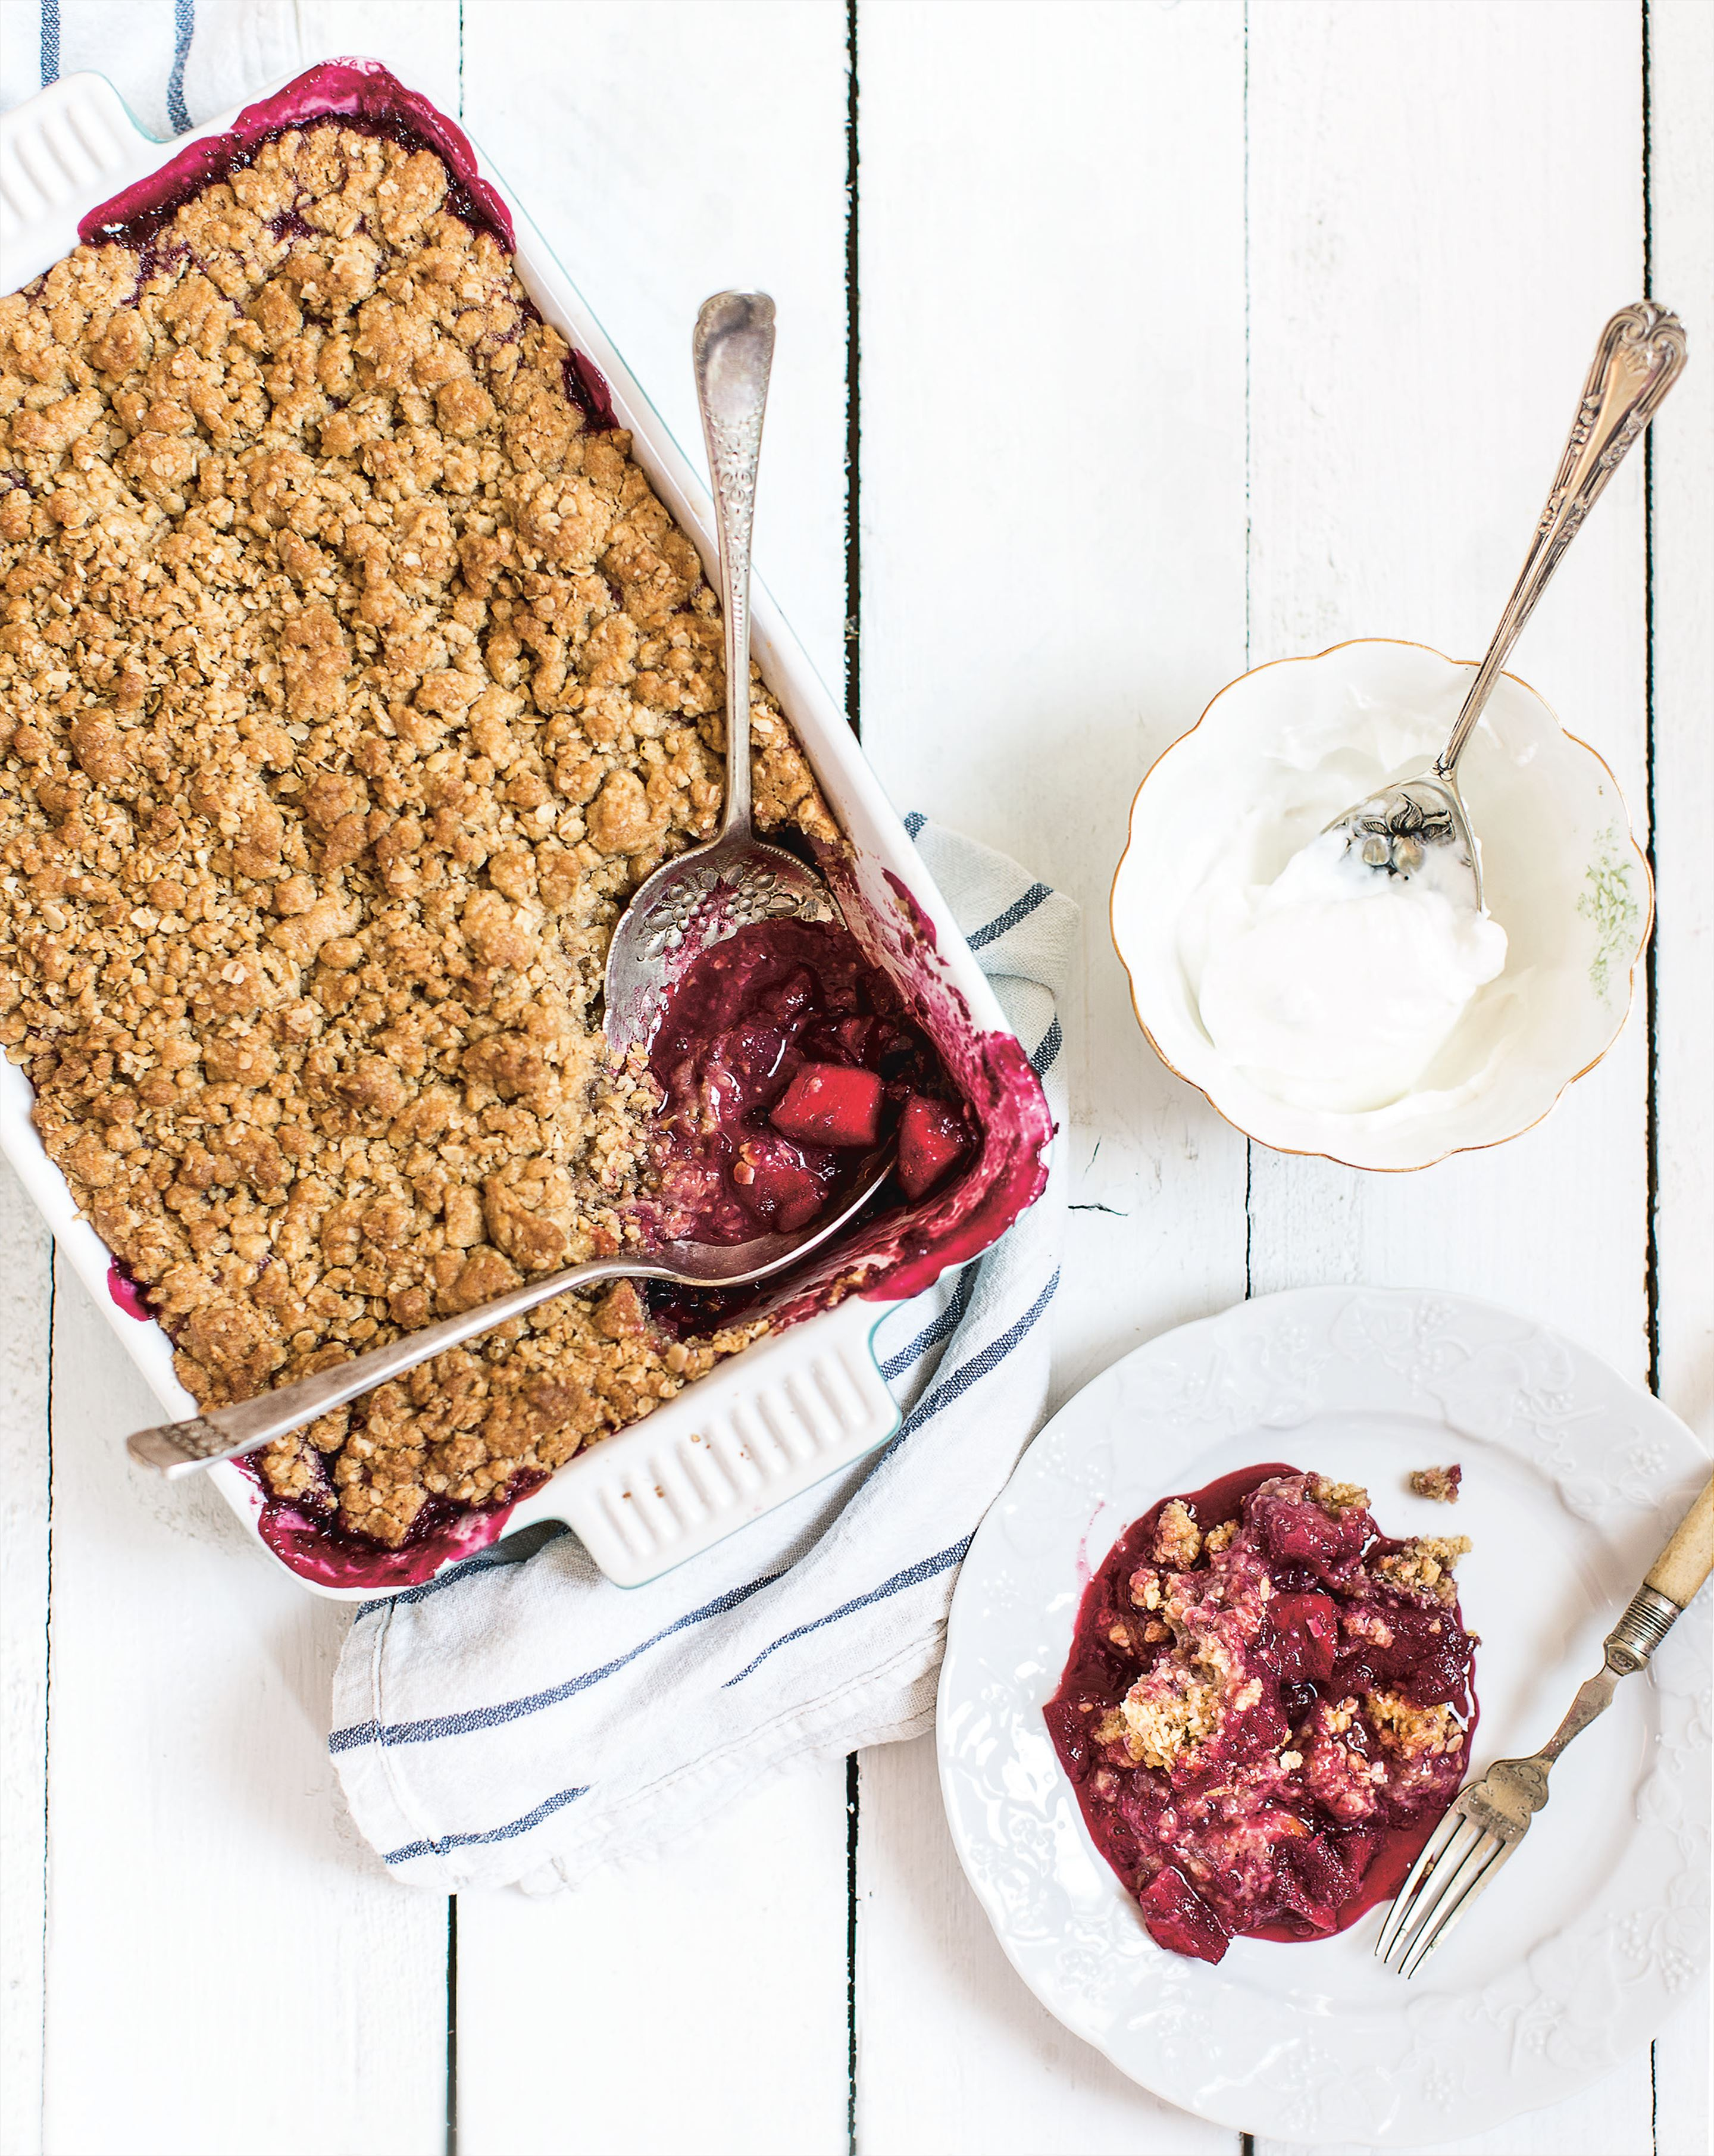 Apple and cherry crumble